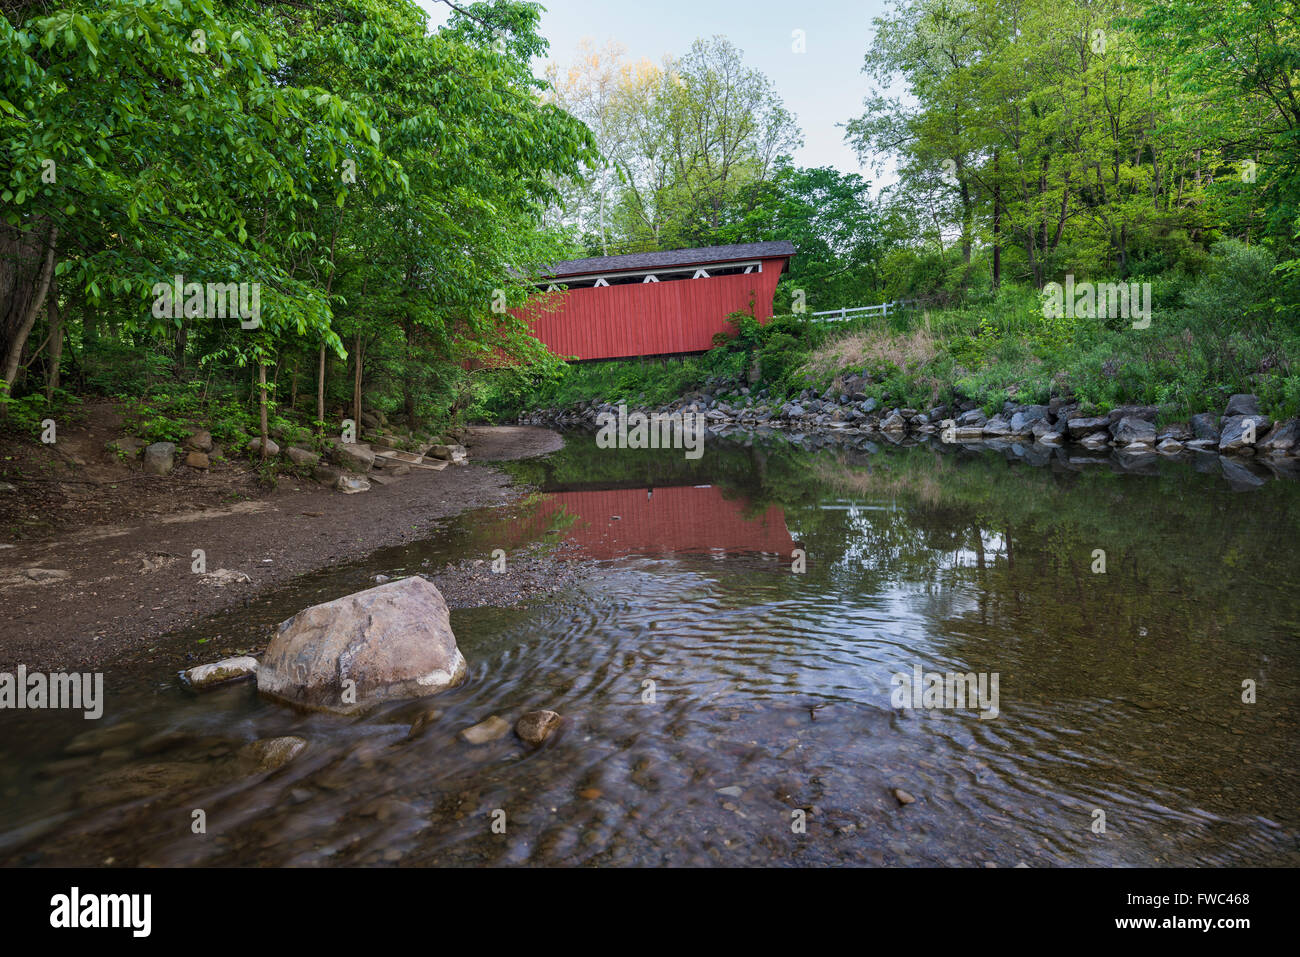 The Everett Road Covered Bridge spans Furnace Run, Cuyahoga Valley National Park, OH. - Stock Image